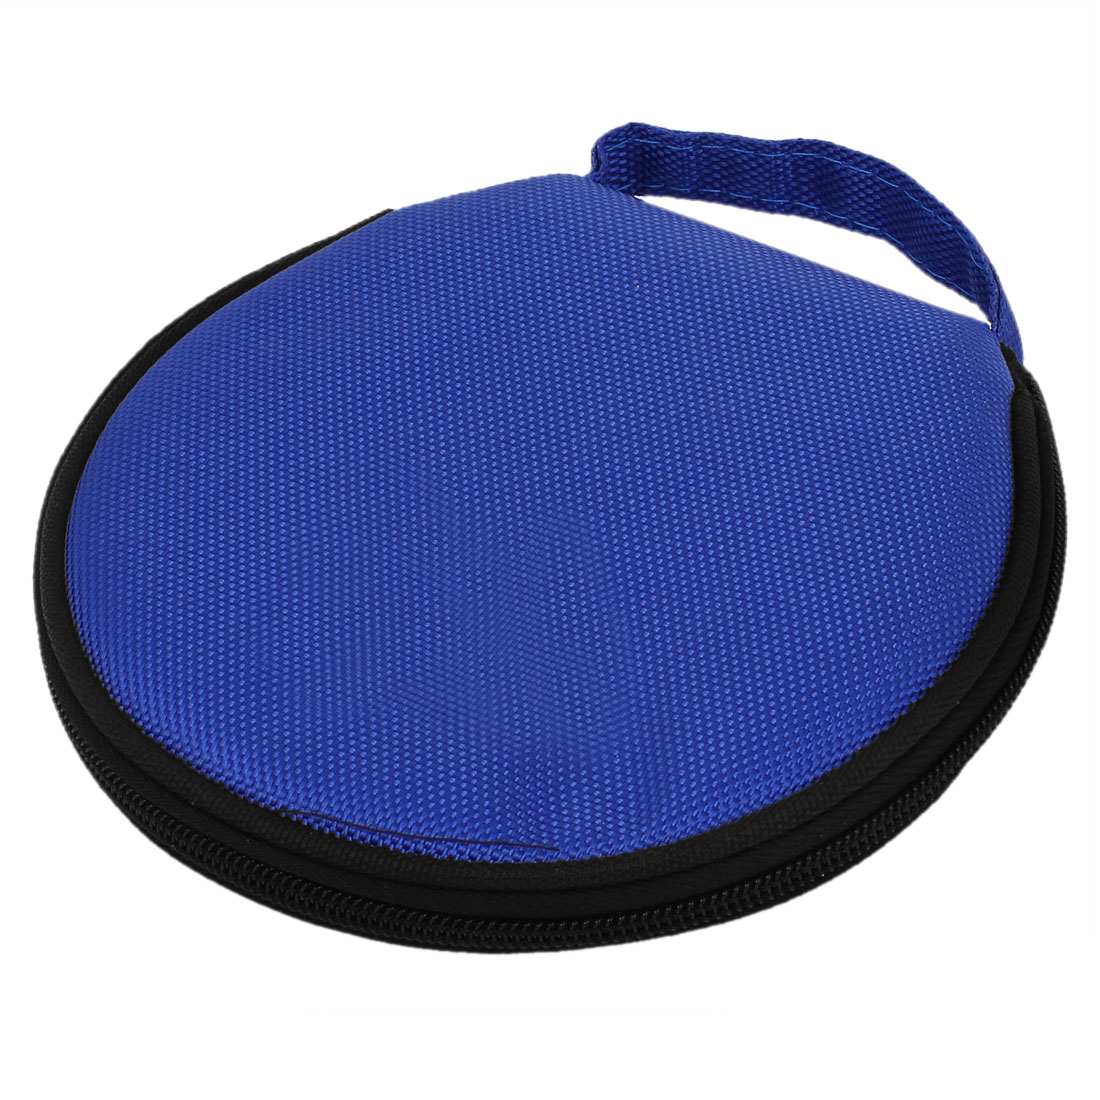 Unique Bargains Zippered 20 Slots CD DVD VCD Wallet Holder Storage Round Case Organizer Blue